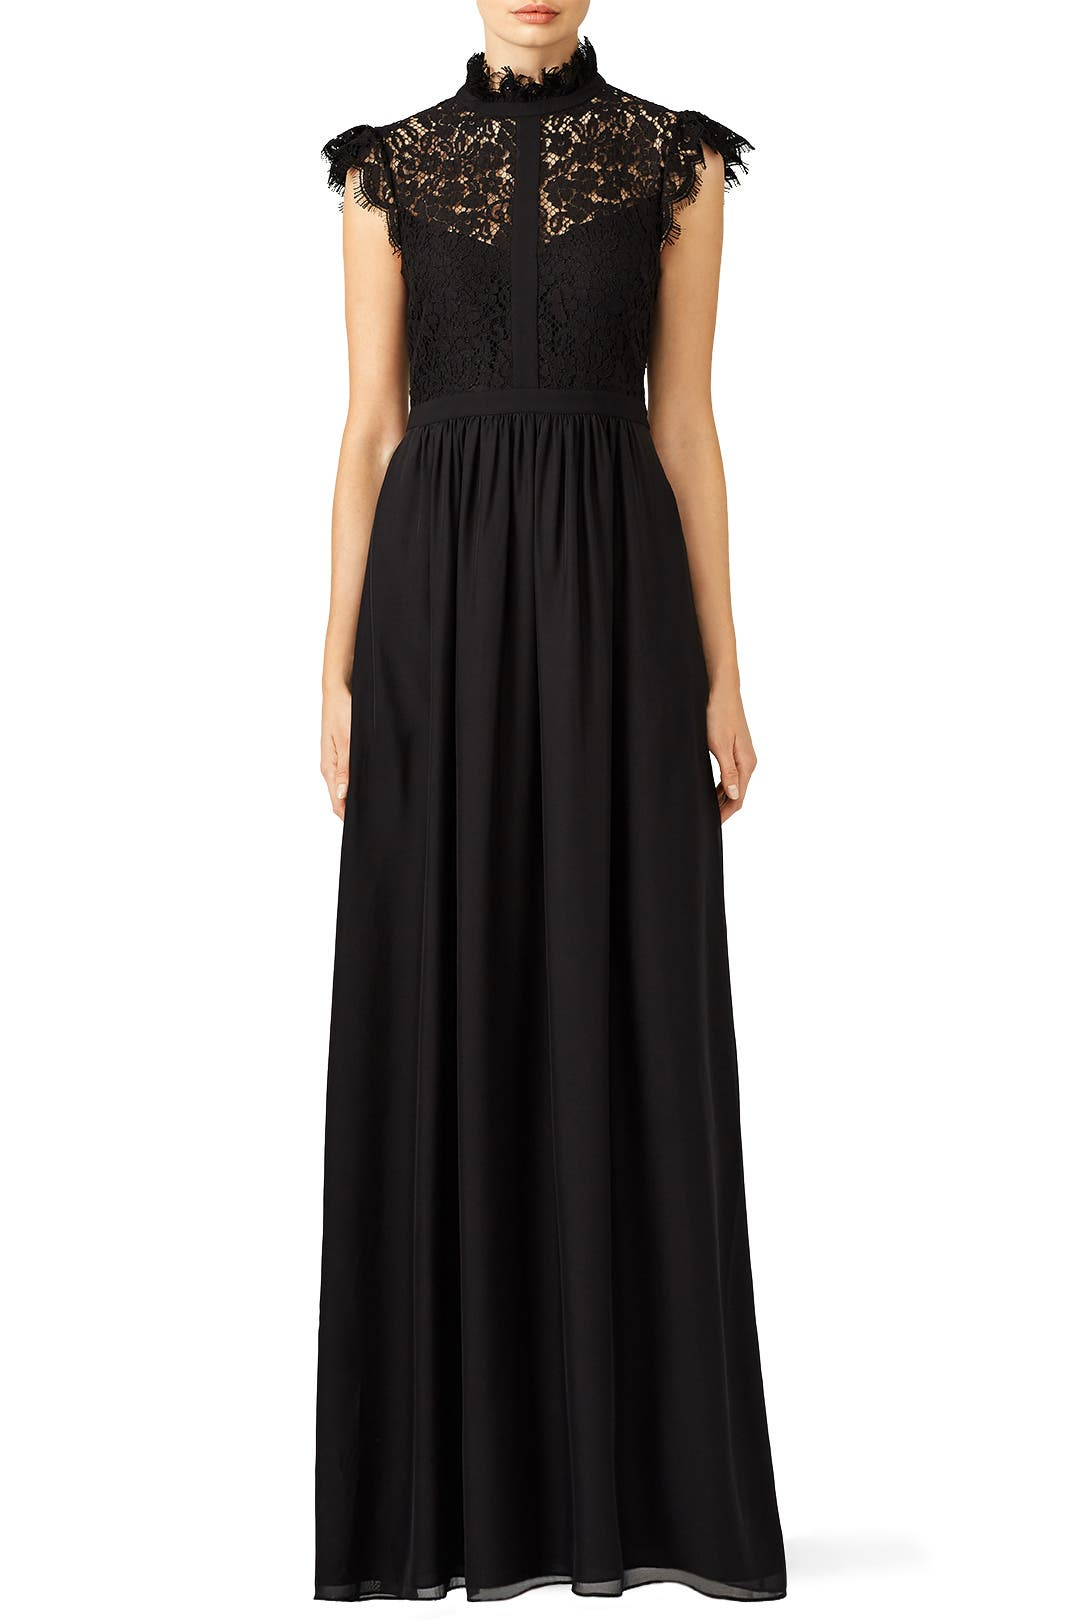 Black Lace Paneled Gown By Rachel Zoe For 80